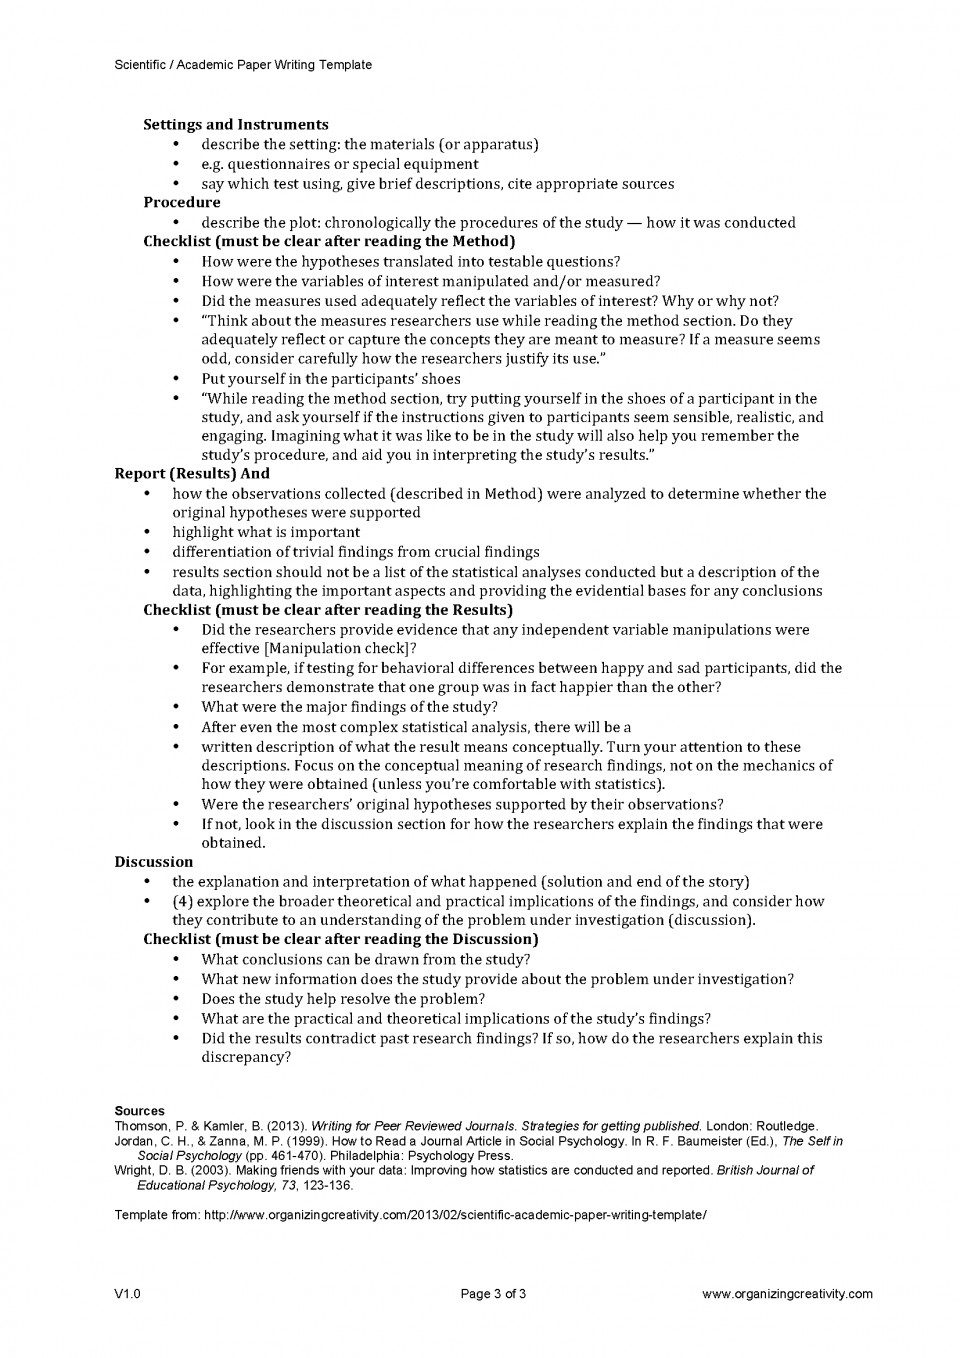 013 Research Paper Scientific Academic Writing Template Page 3 Methods Unique Outline Method 960